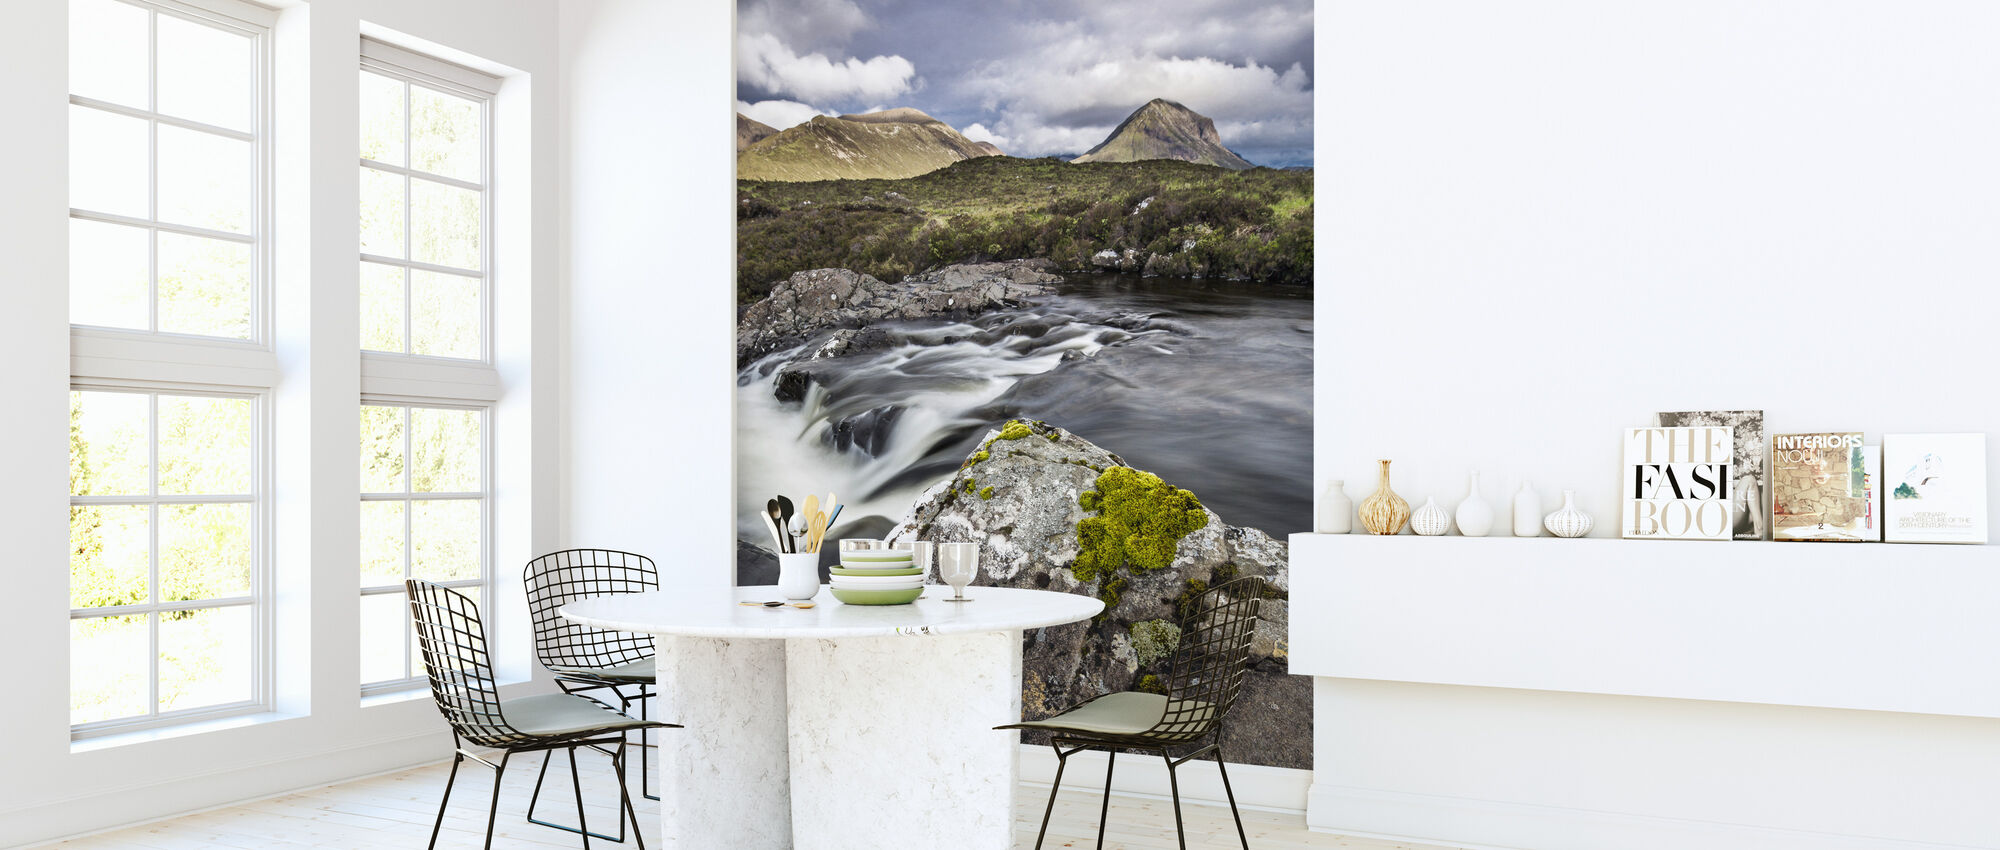 Beautiful Landscape, Isle of Skye - Scotland - Wallpaper - Kitchen